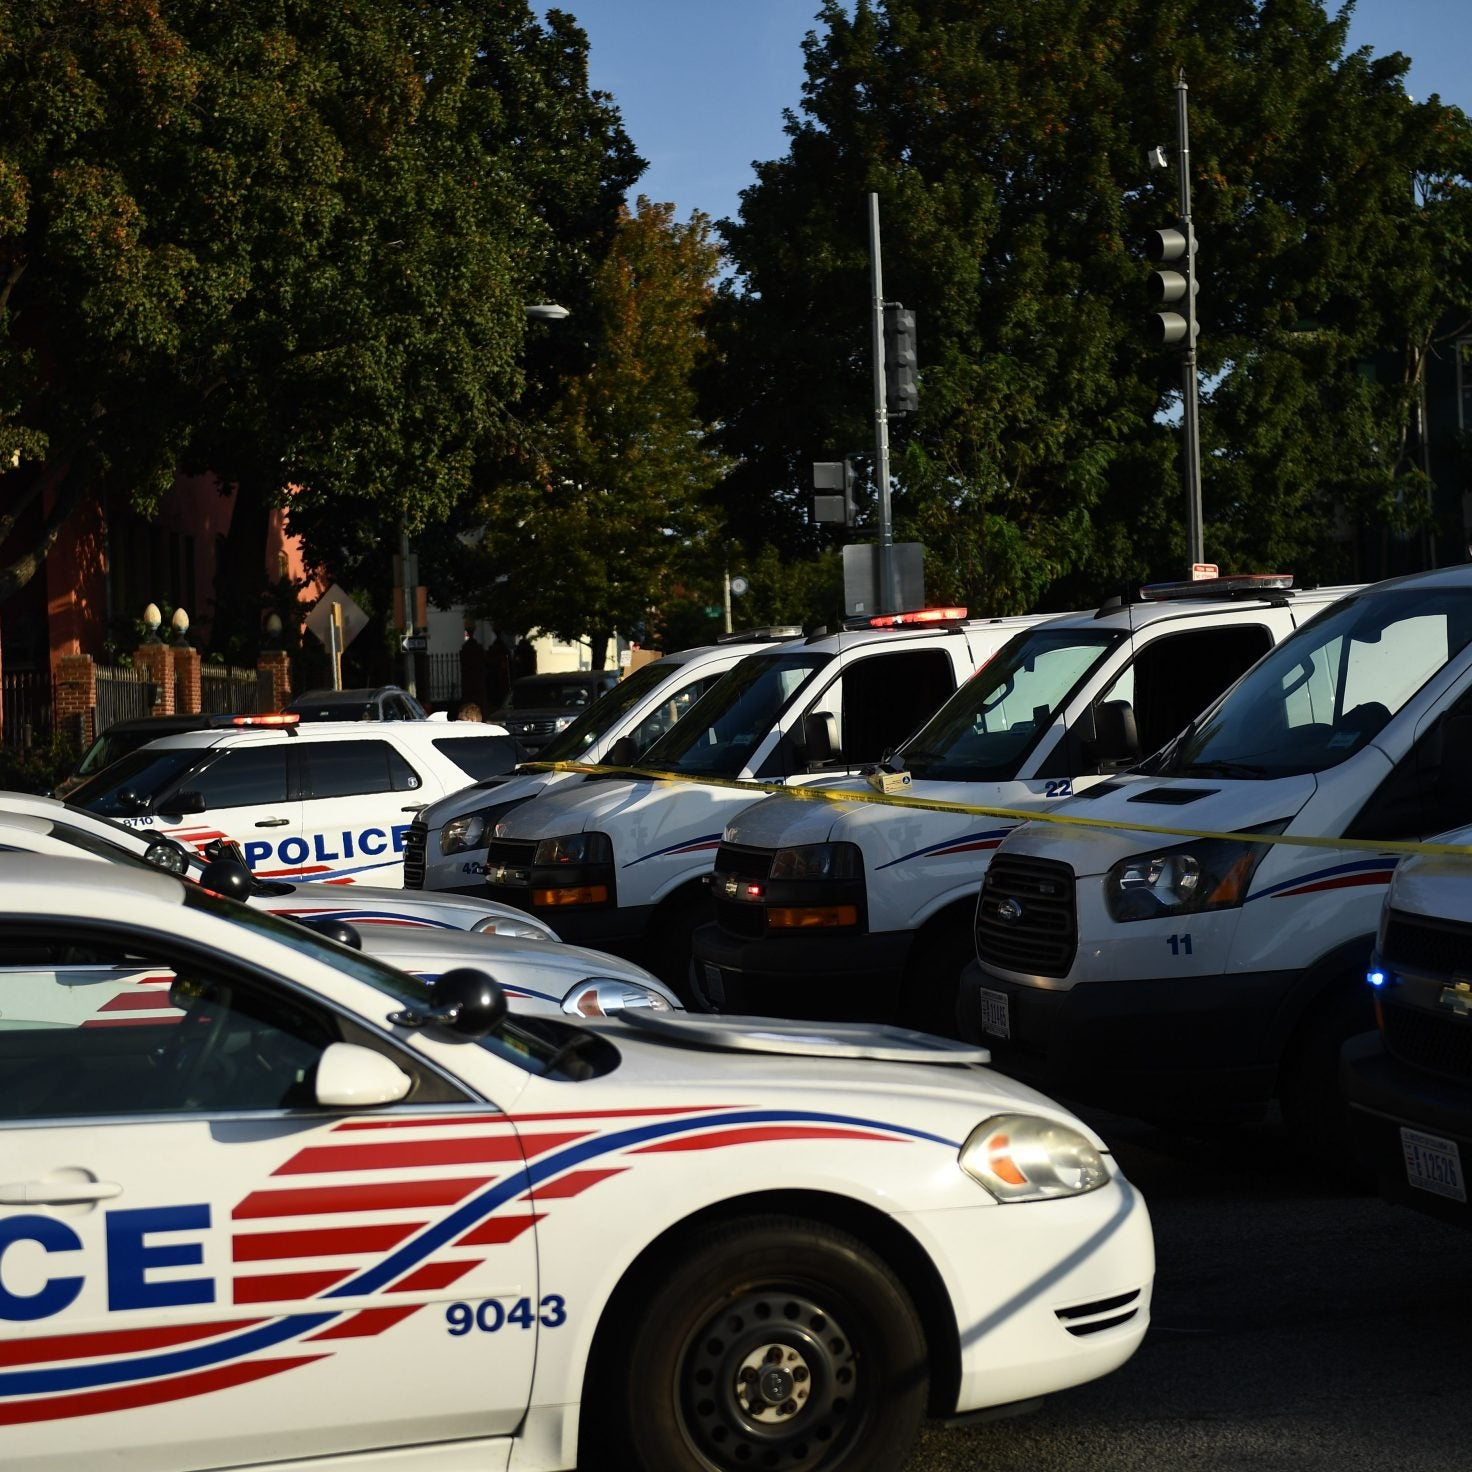 DC Police Will Stop Handcuffing Kids Under 12